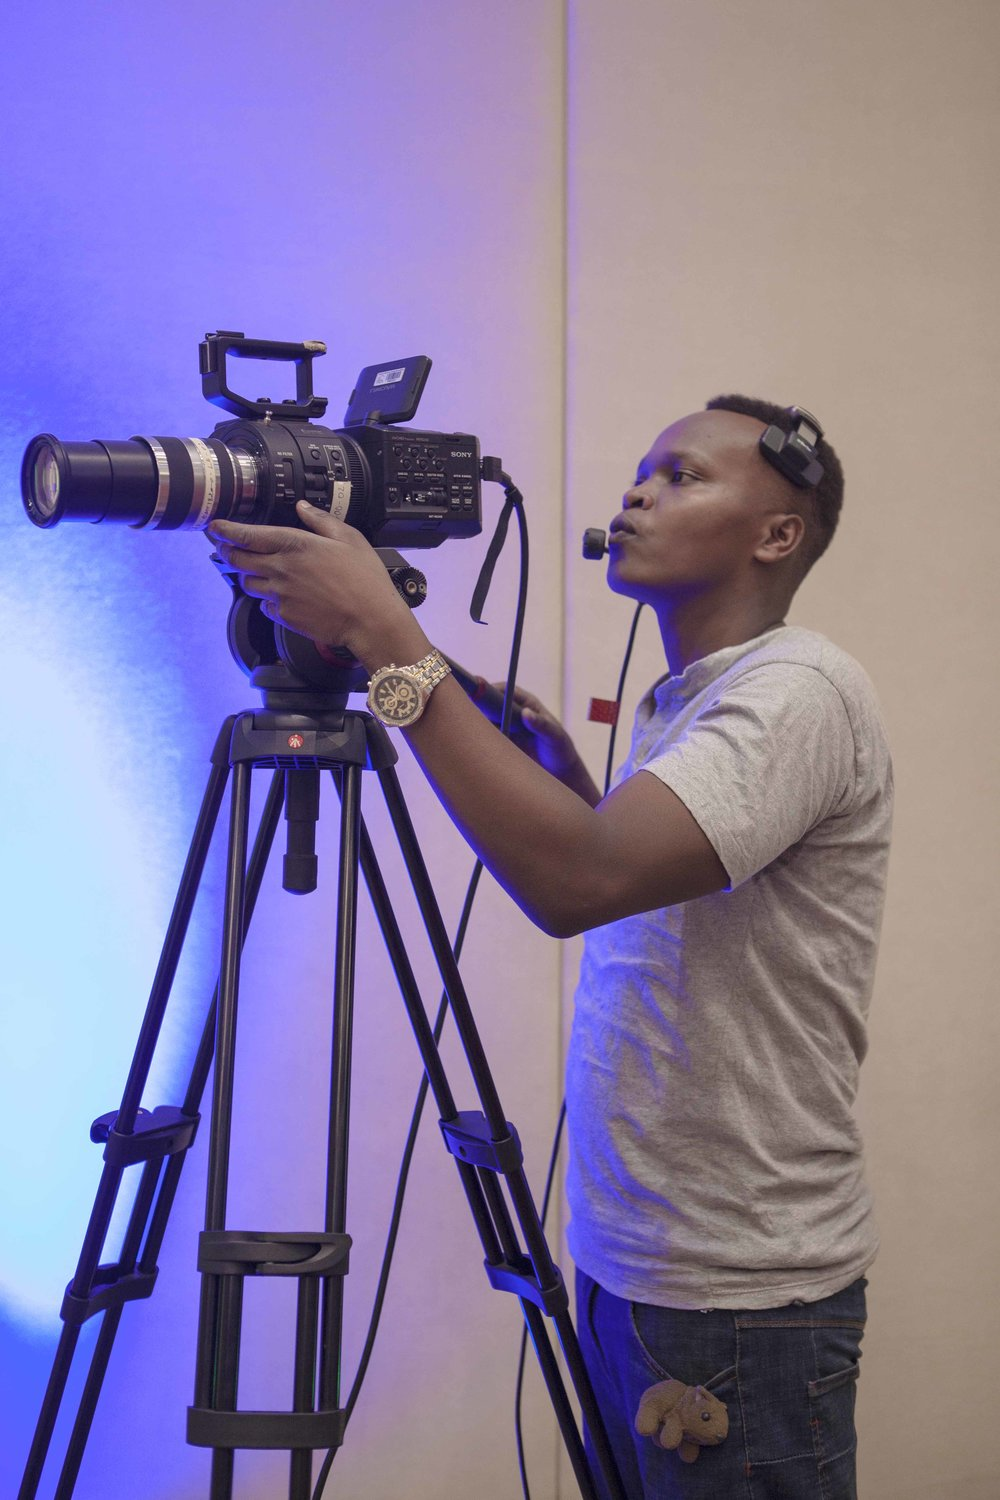 Yves, one of ADMA students setting up the Sony FS700